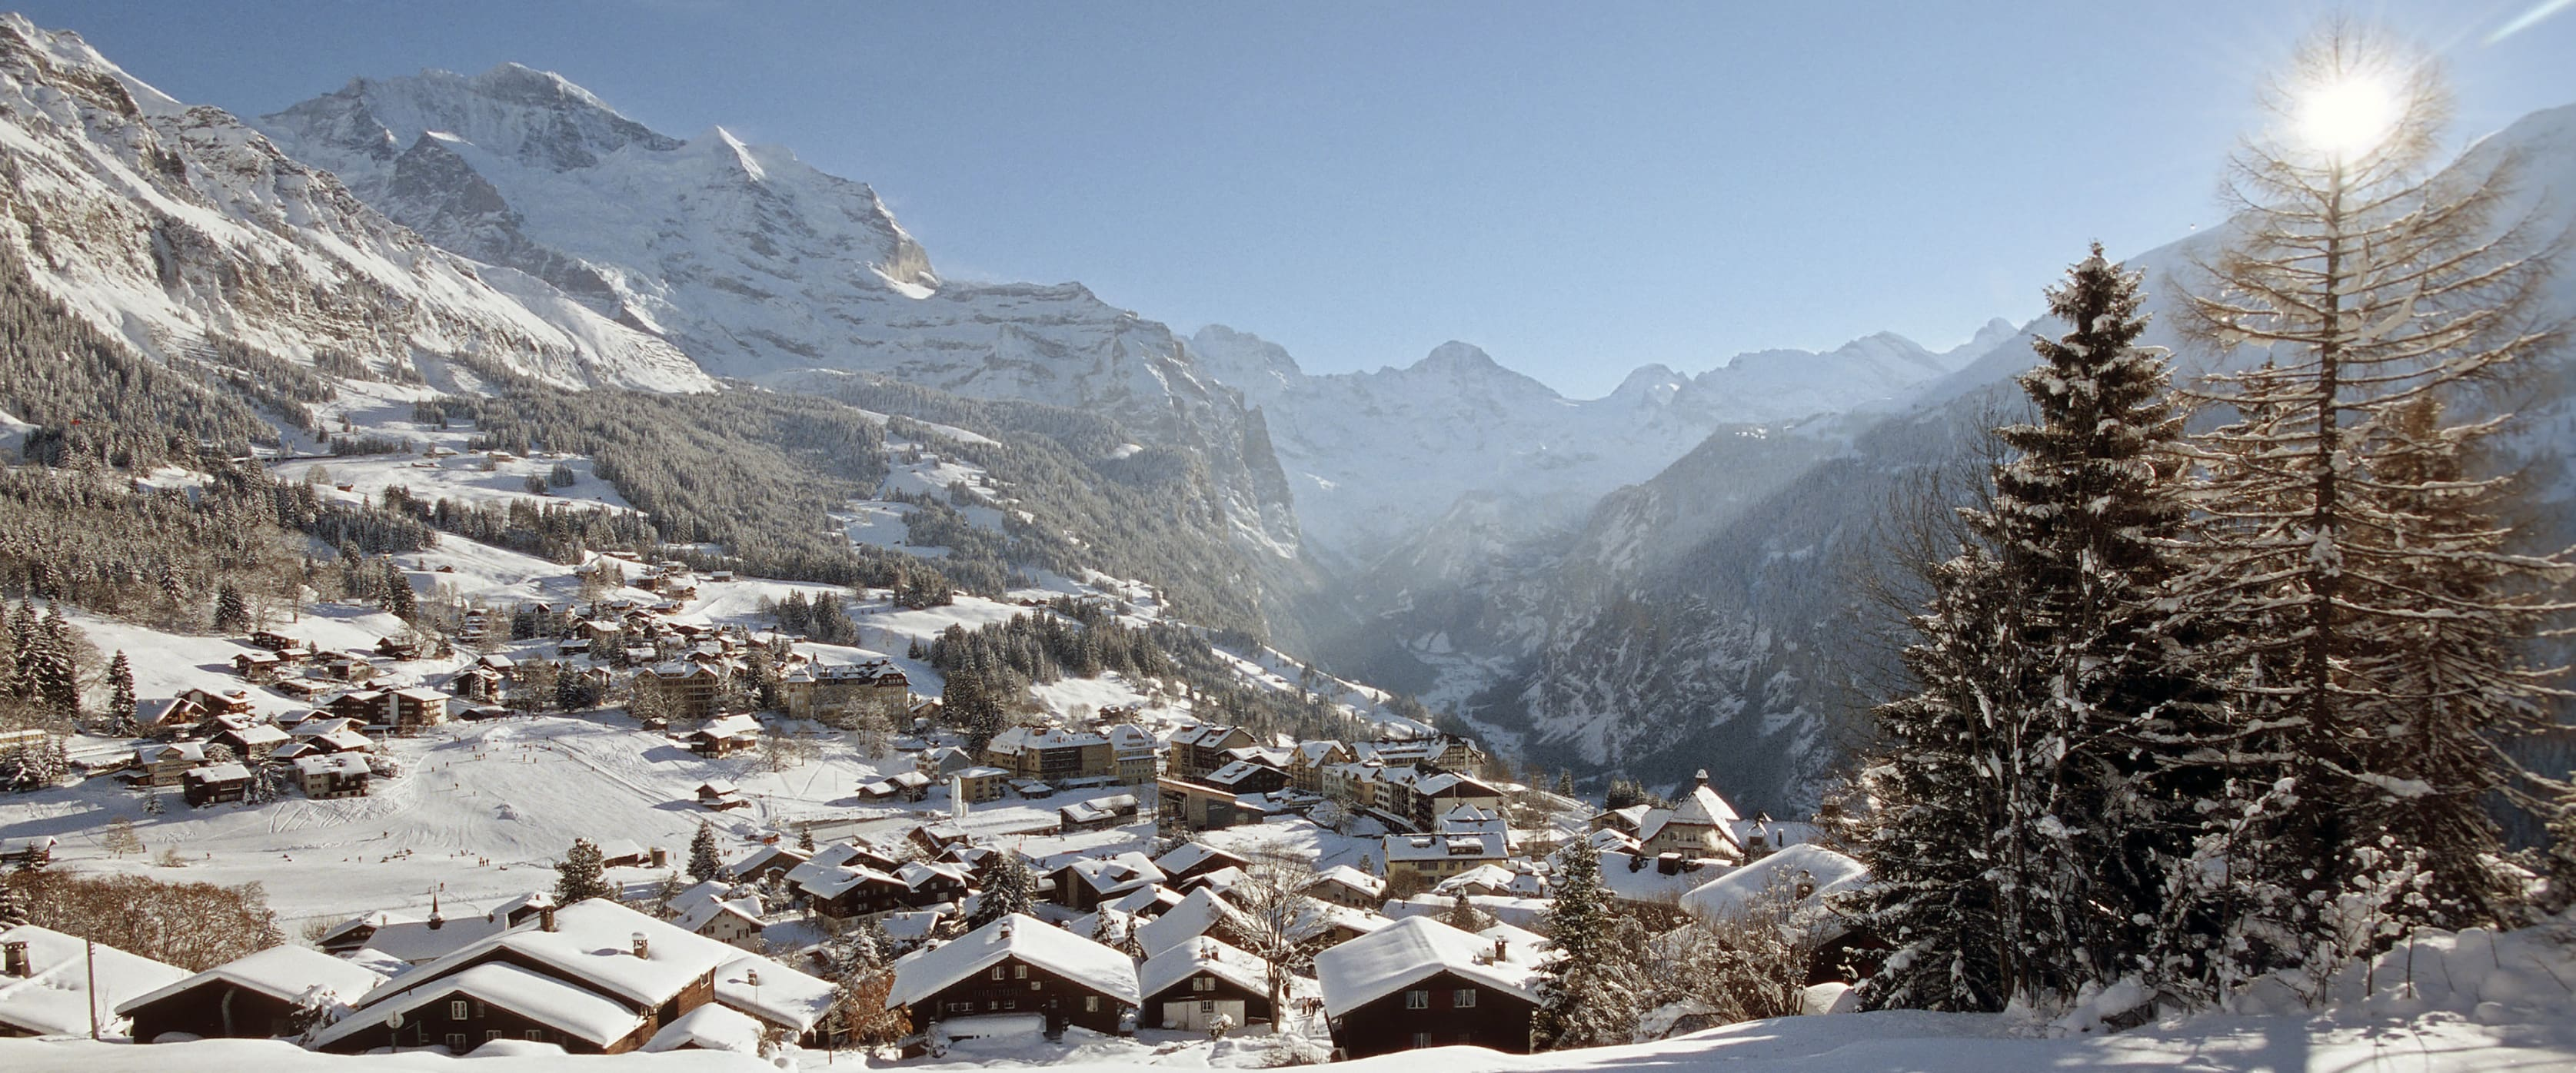 Wengen Winter Schnee Alpen Lauterbrunnental